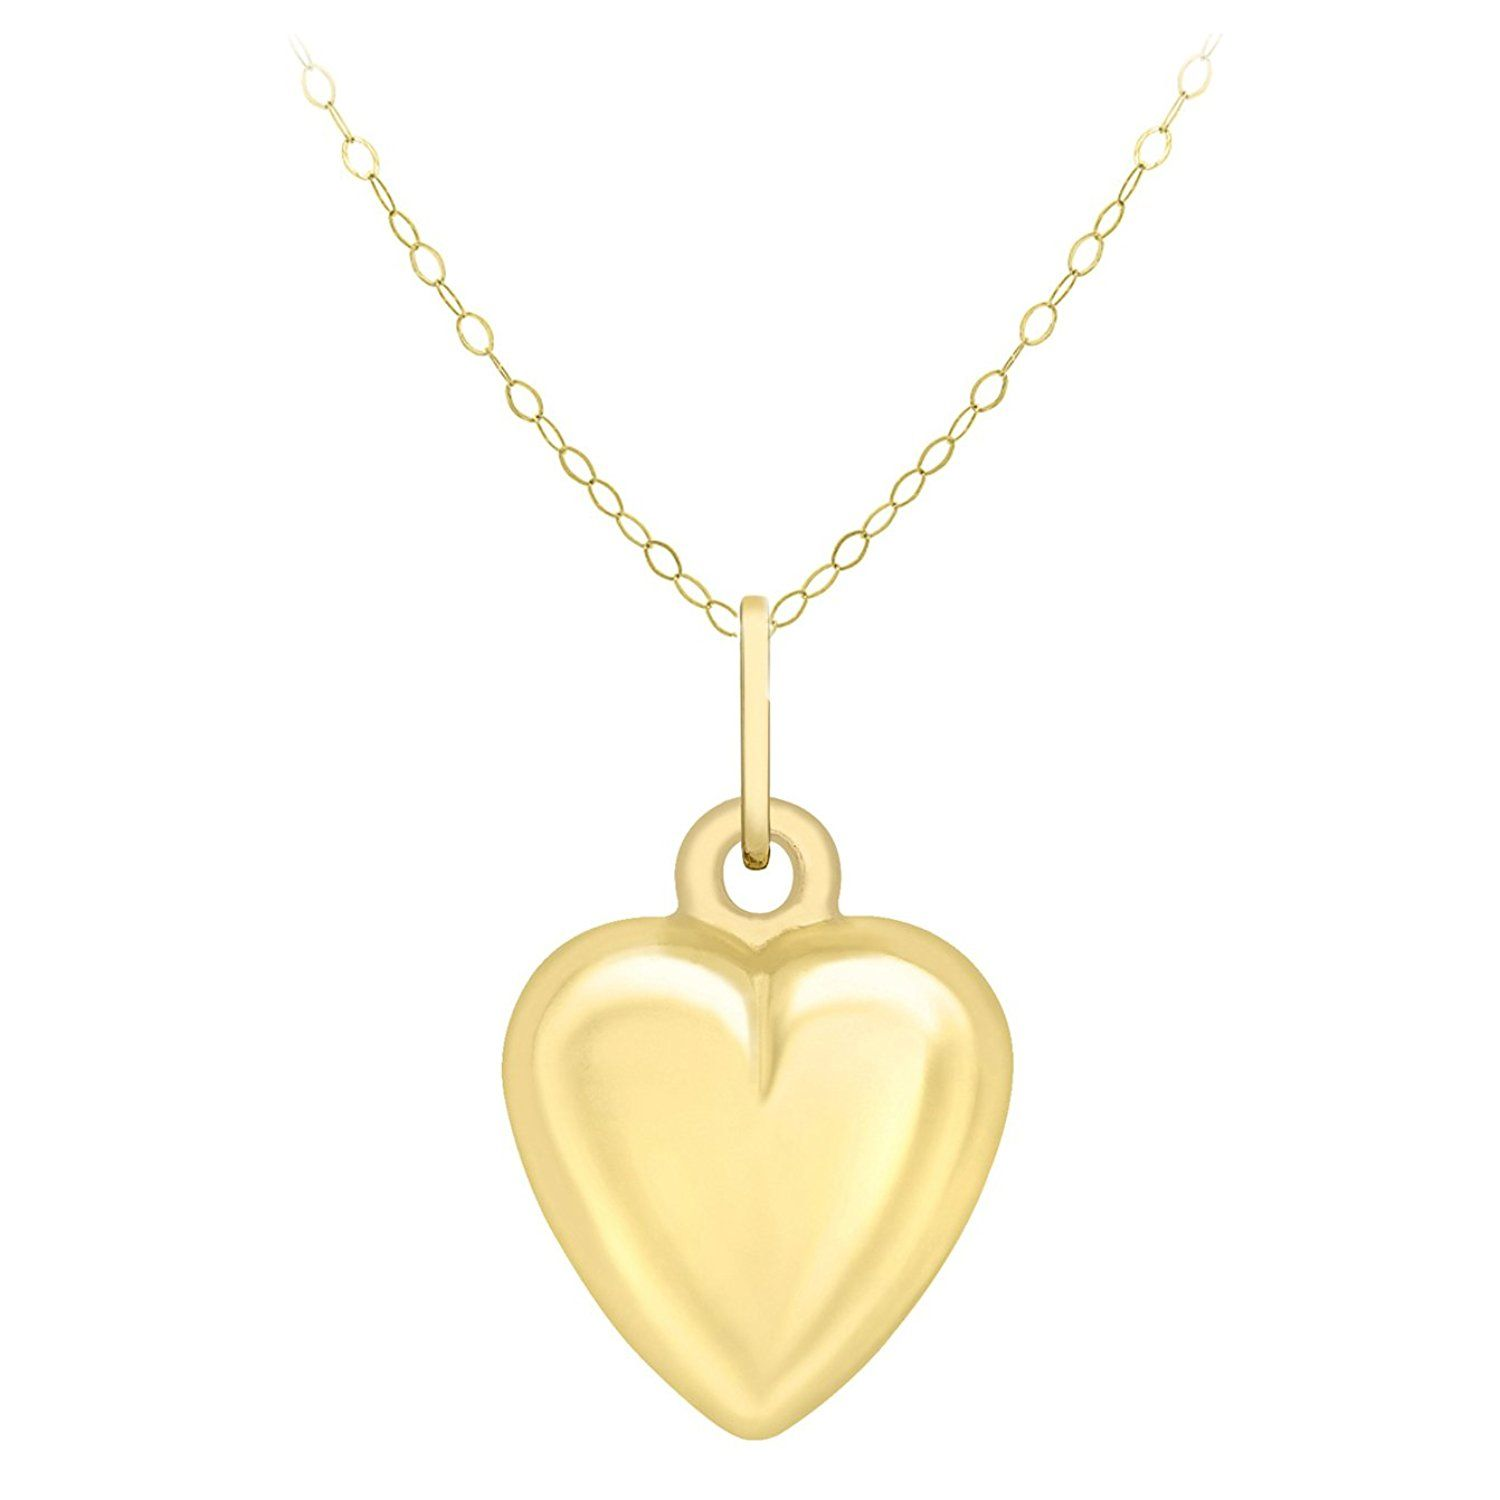 locket jewelry plated love product s gold flower pendants lover gifts platinum chain rose heart store necklaces constellation necklace lockets